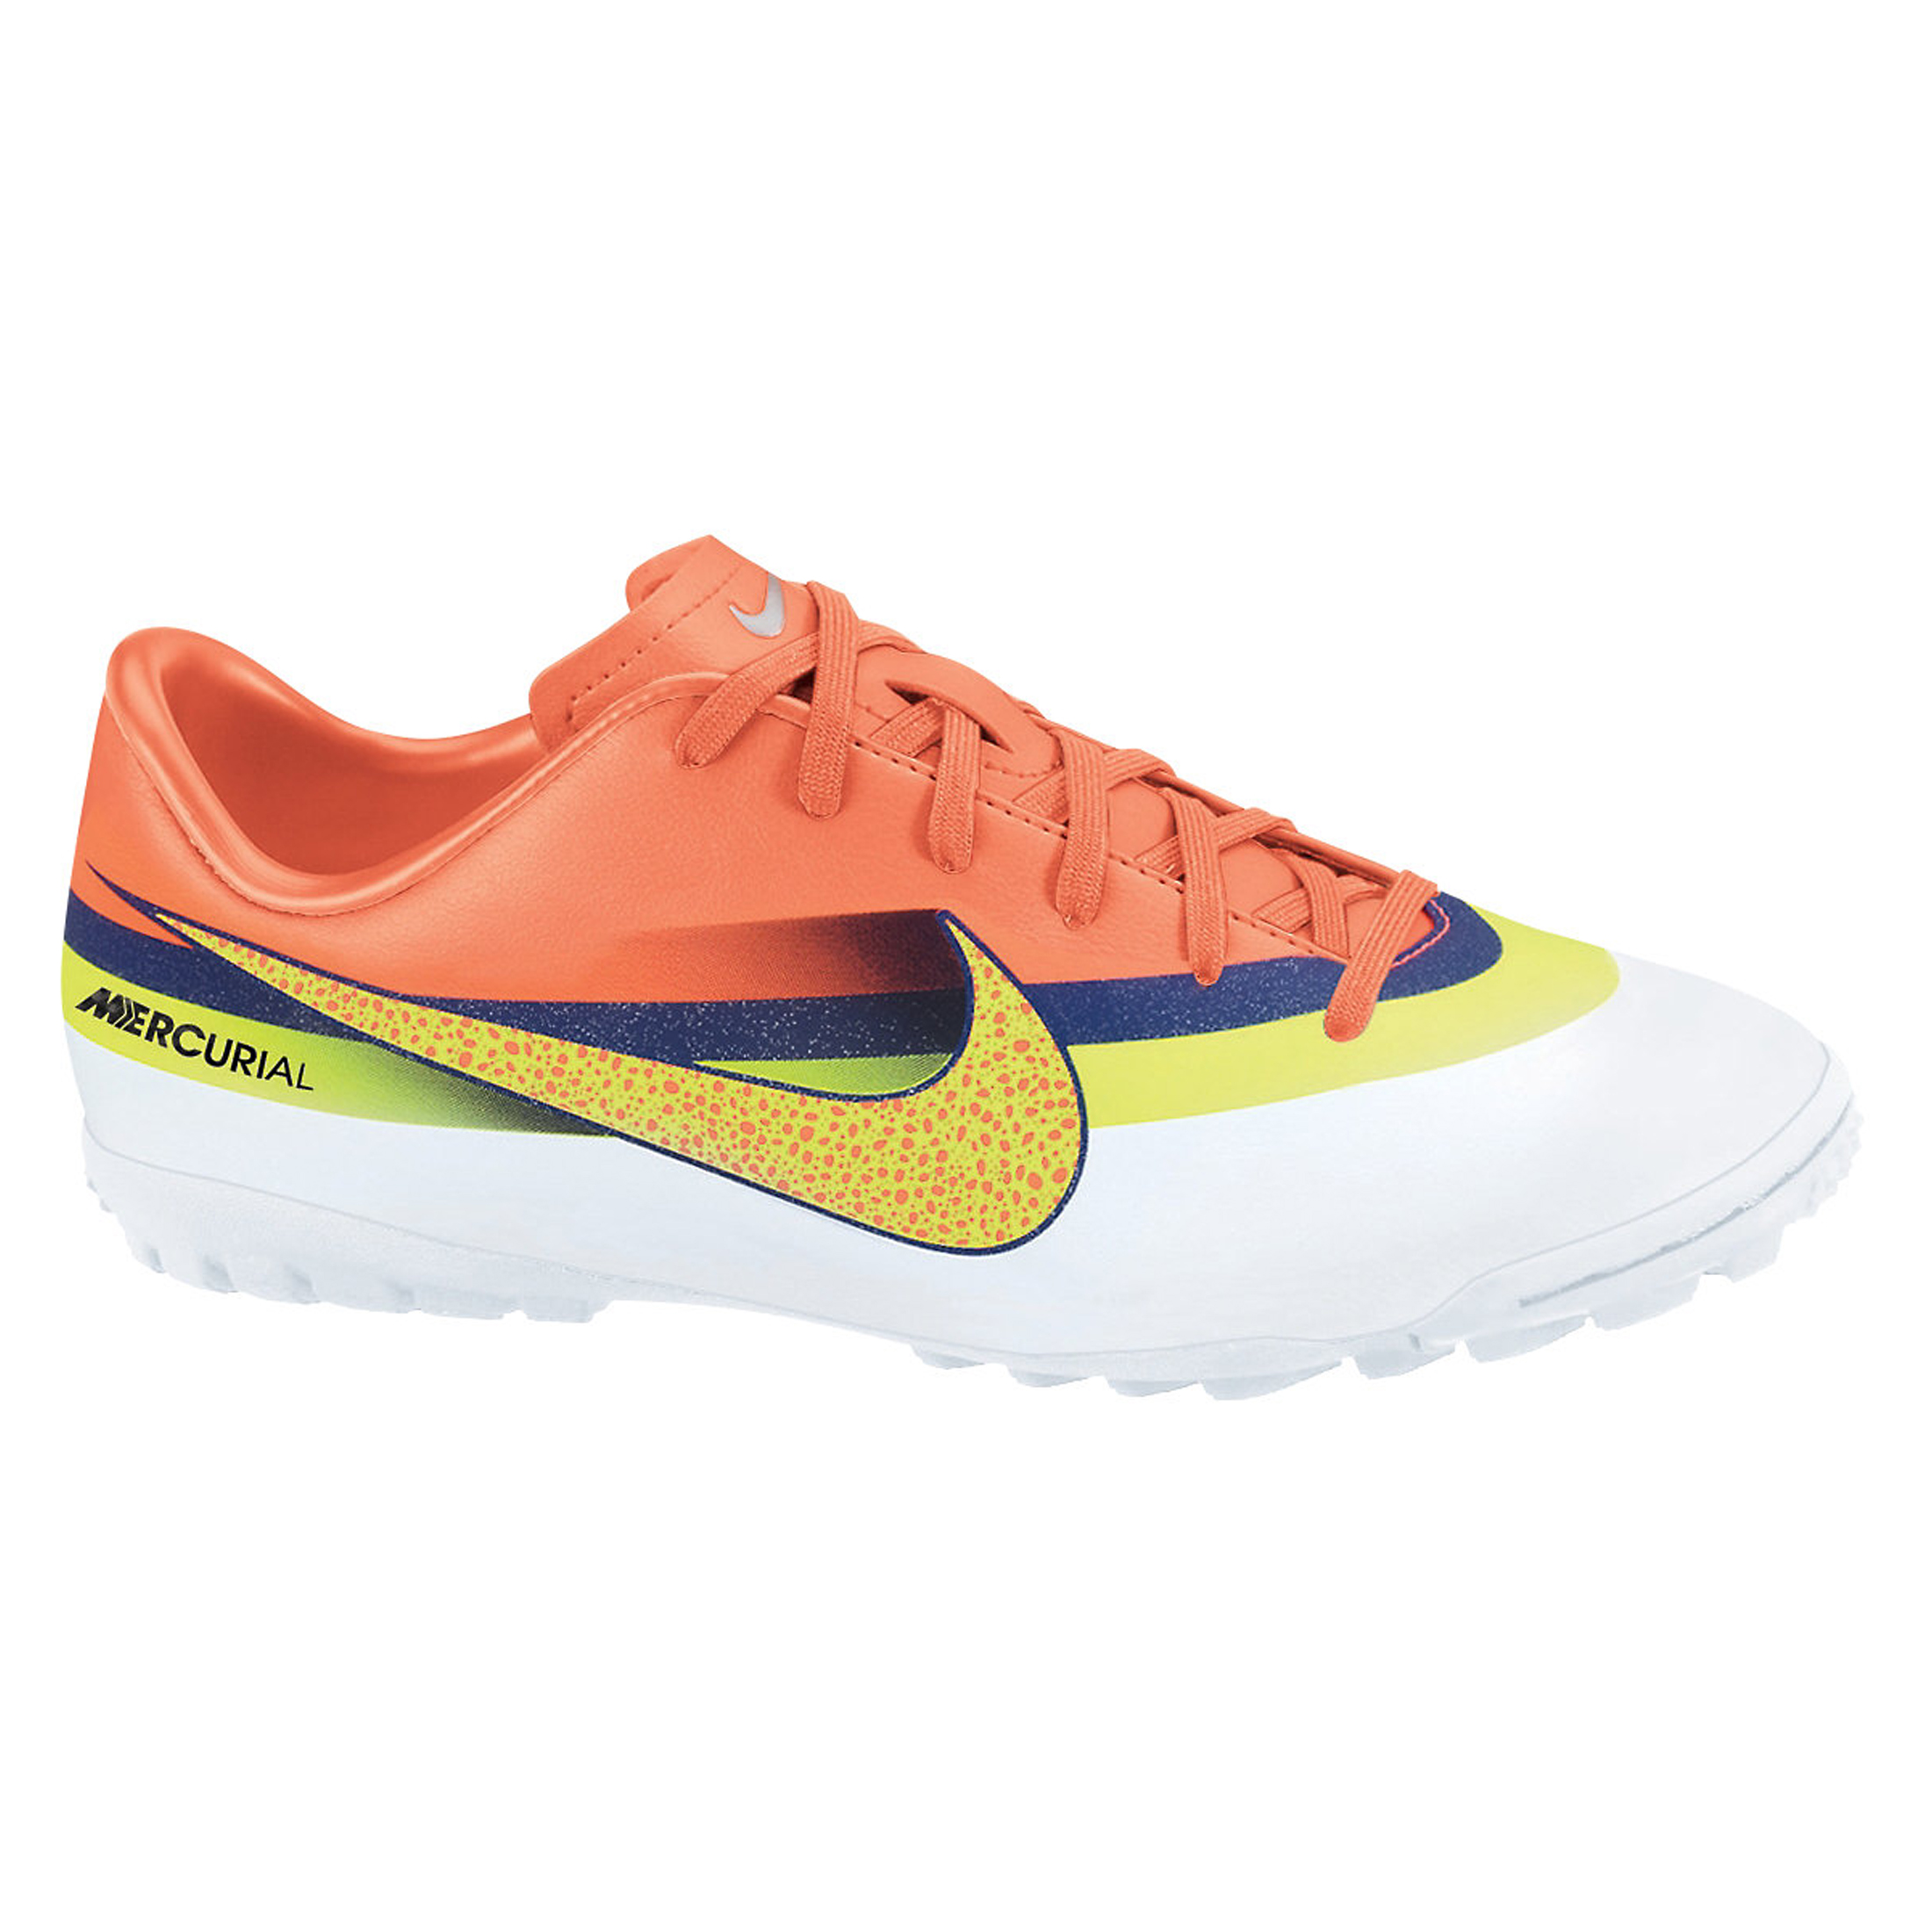 Nike Mercurial Victory IV CR7 Astroturf Trainers - White/Volt/Loyal Blue/Total Crimson - Kids